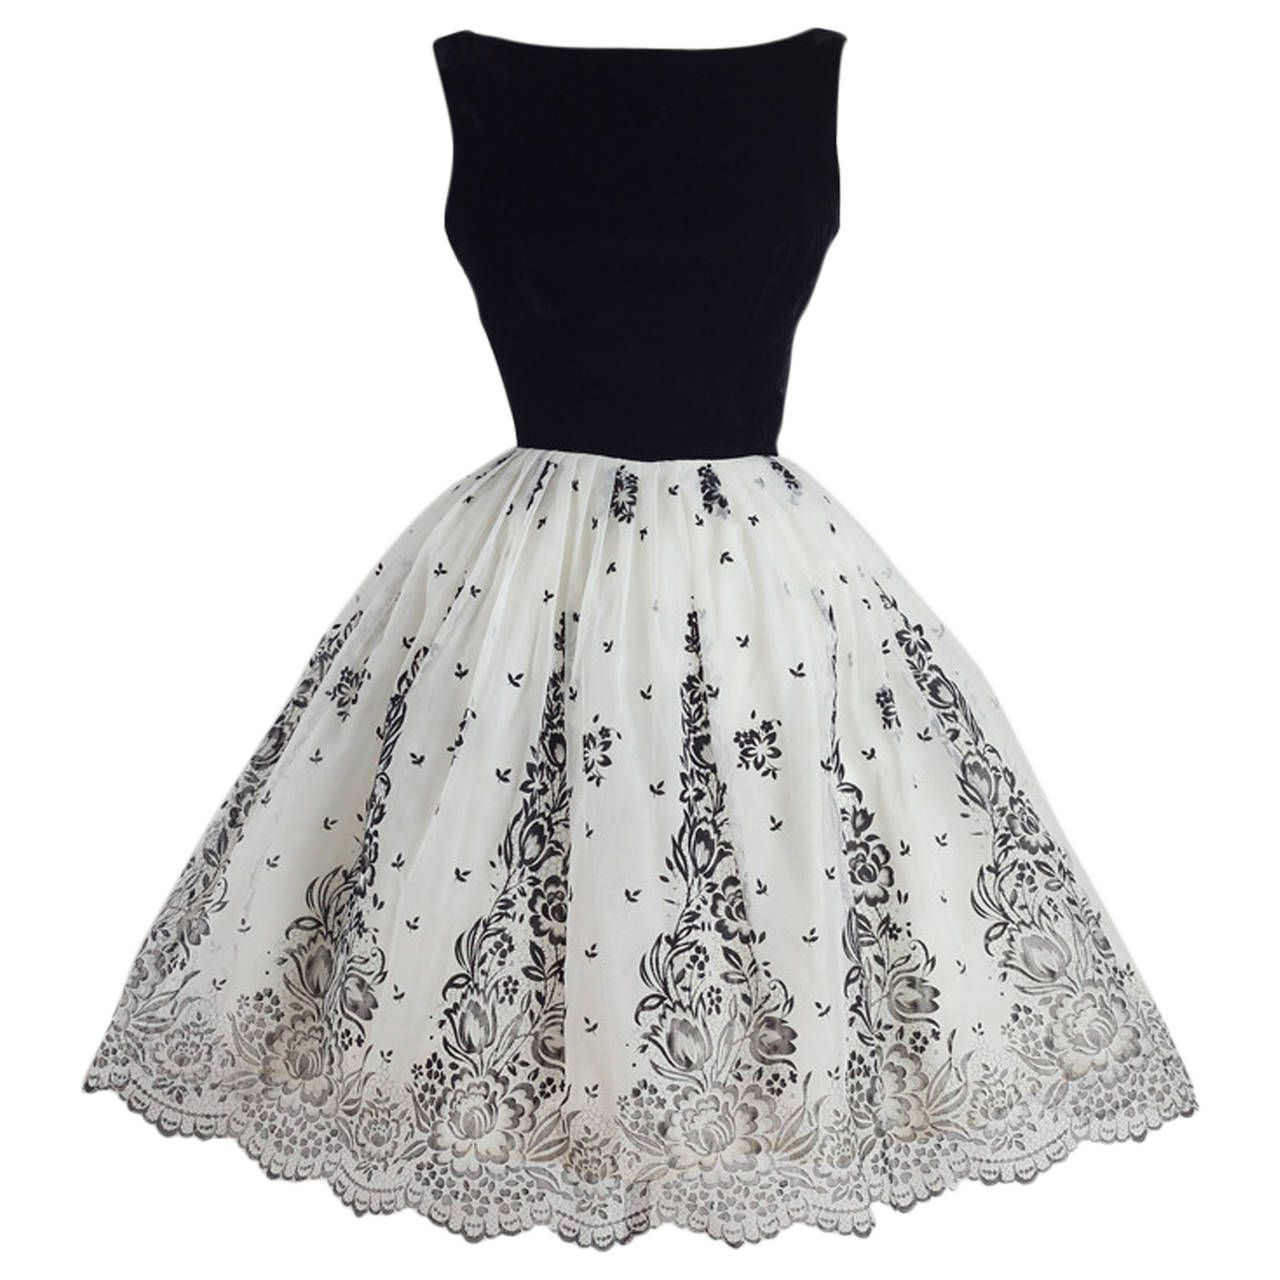 Vintage 1950s Black and White Flocked Chiffon Party Dress | Vintage ...